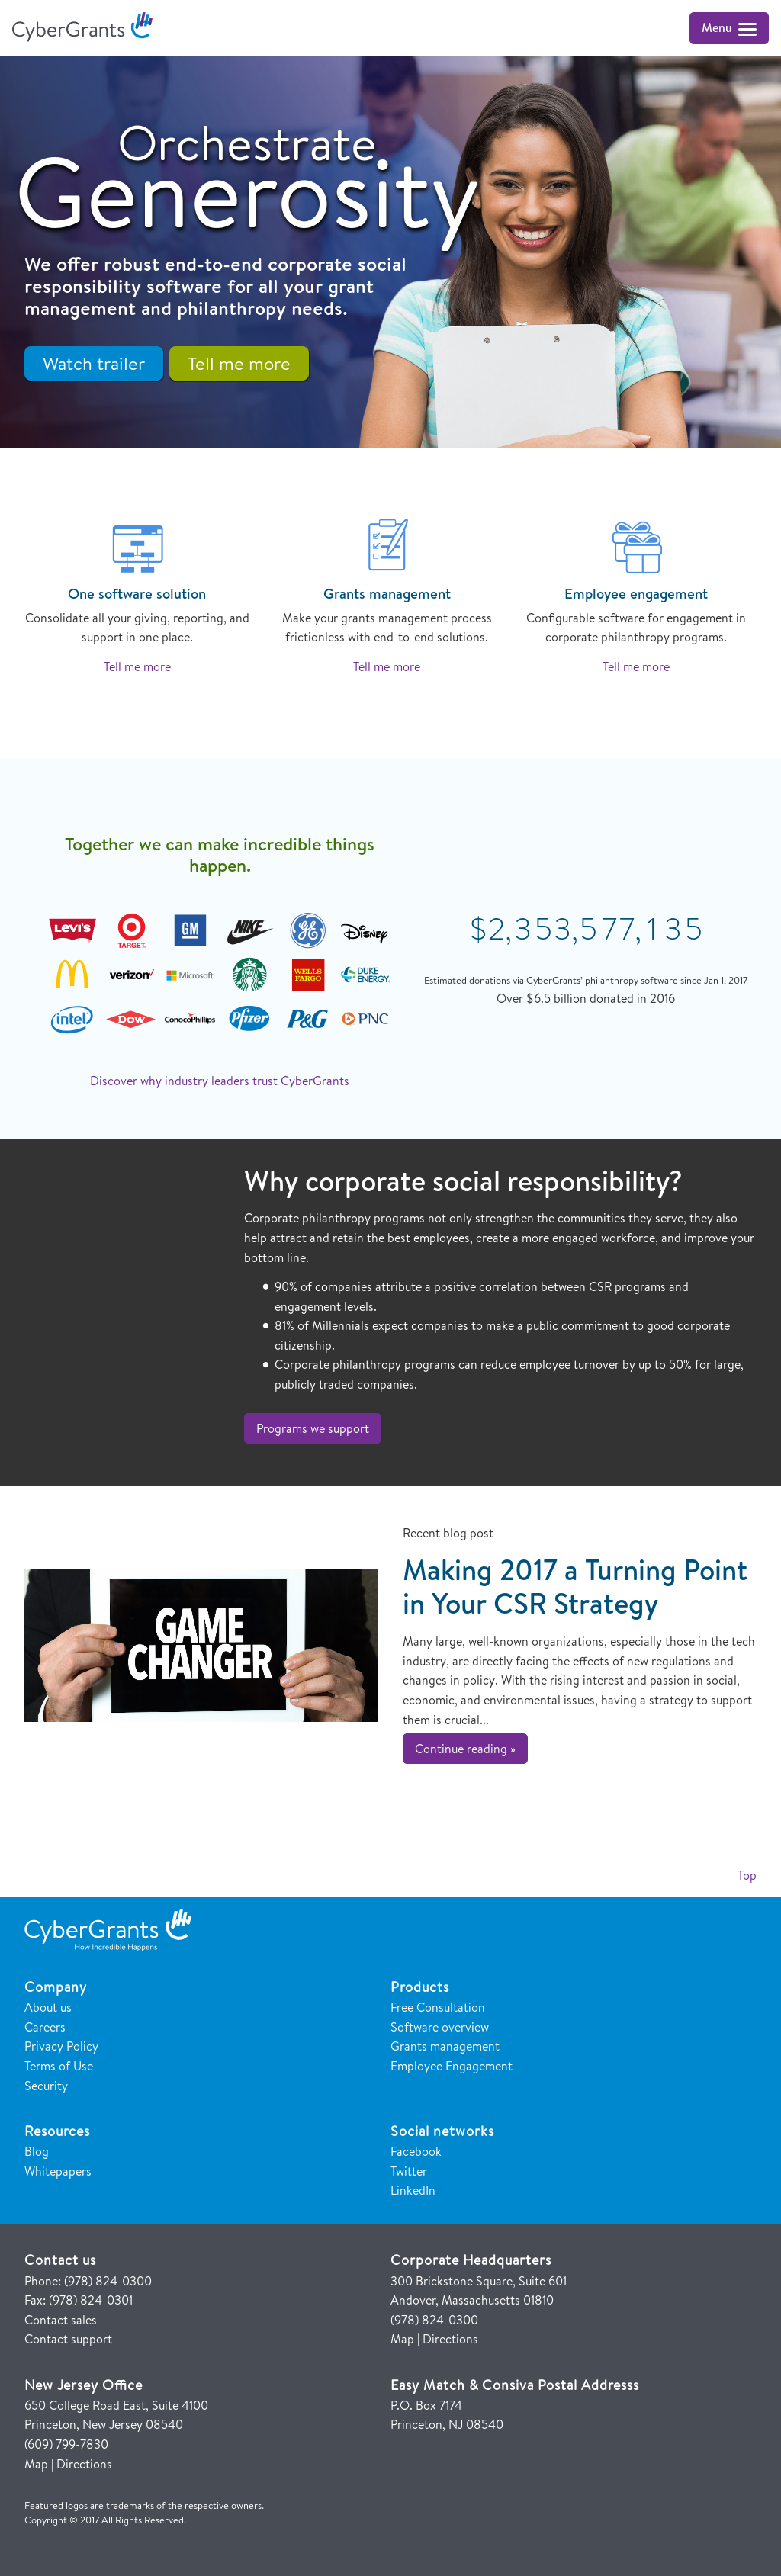 CyberGrants Competitors, Revenue and Employees - Owler